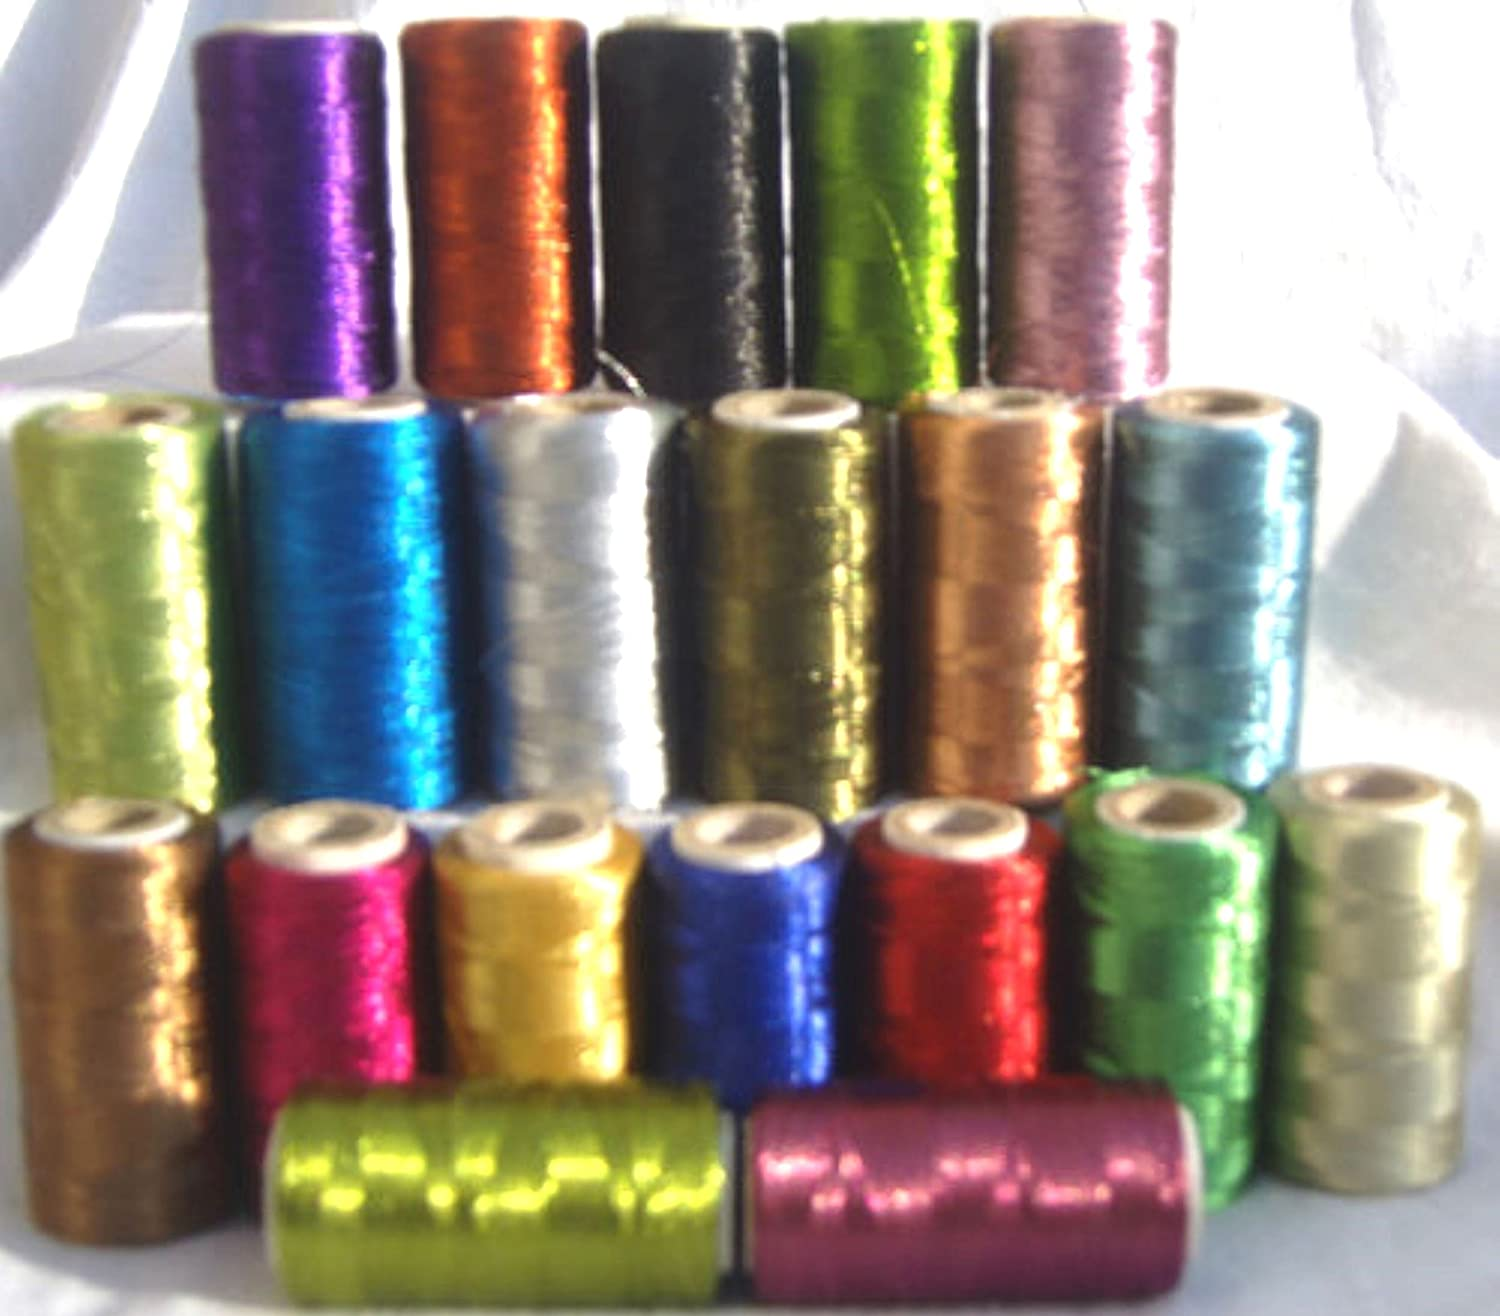 20 Metallic Embroidery Machine Thread Spools, 20 different colour 400 YARDS EACH, High Quality GCS